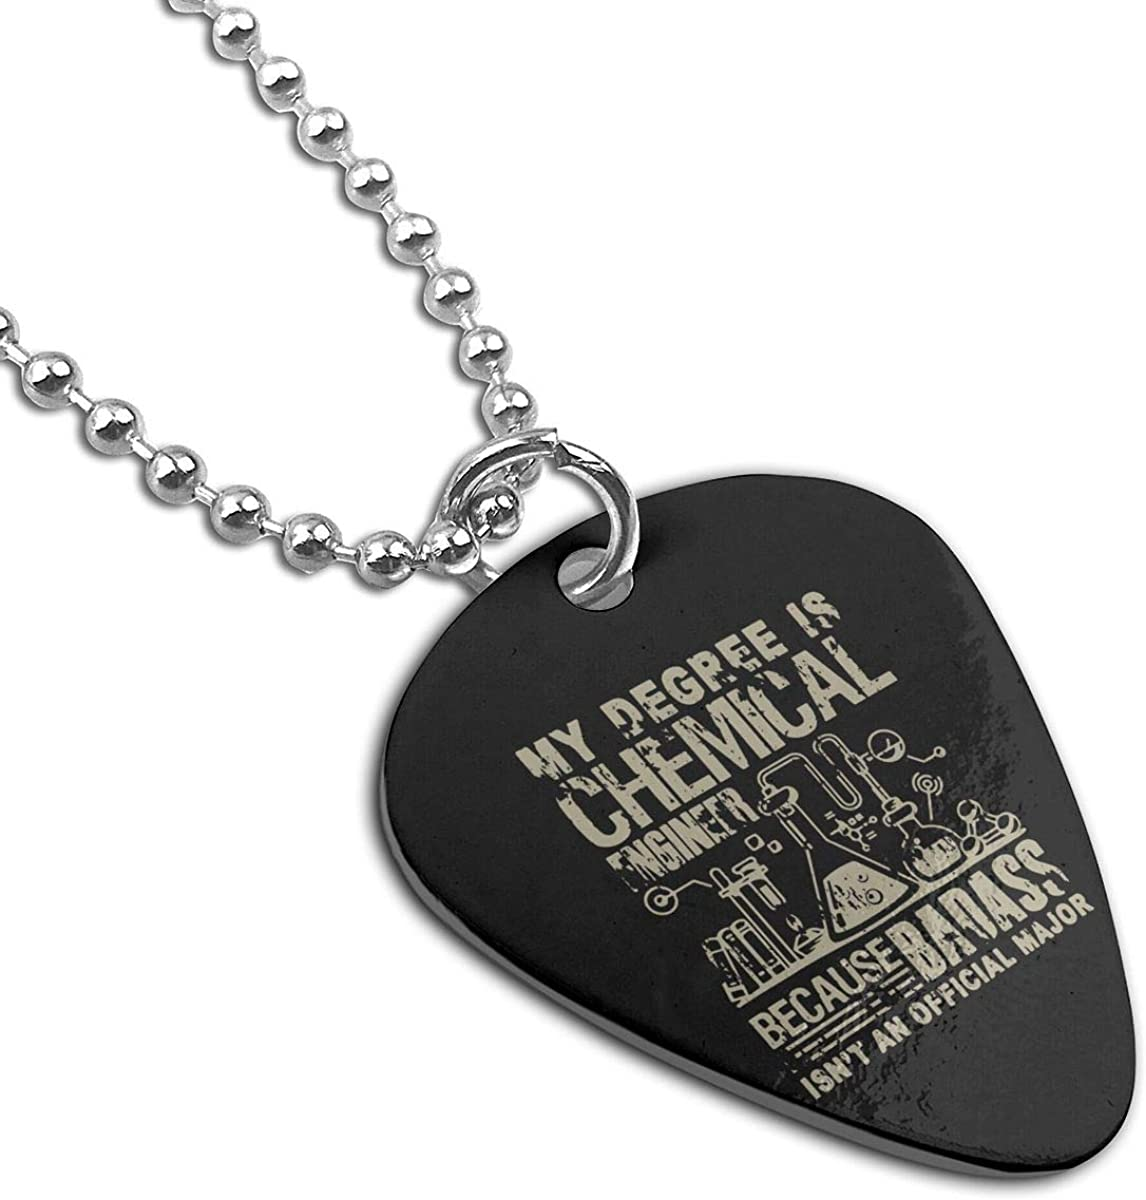 MY DEGREE IS CHEMICAL ENGINEER Custom Guitar Pick Pendant Necklace Keychain